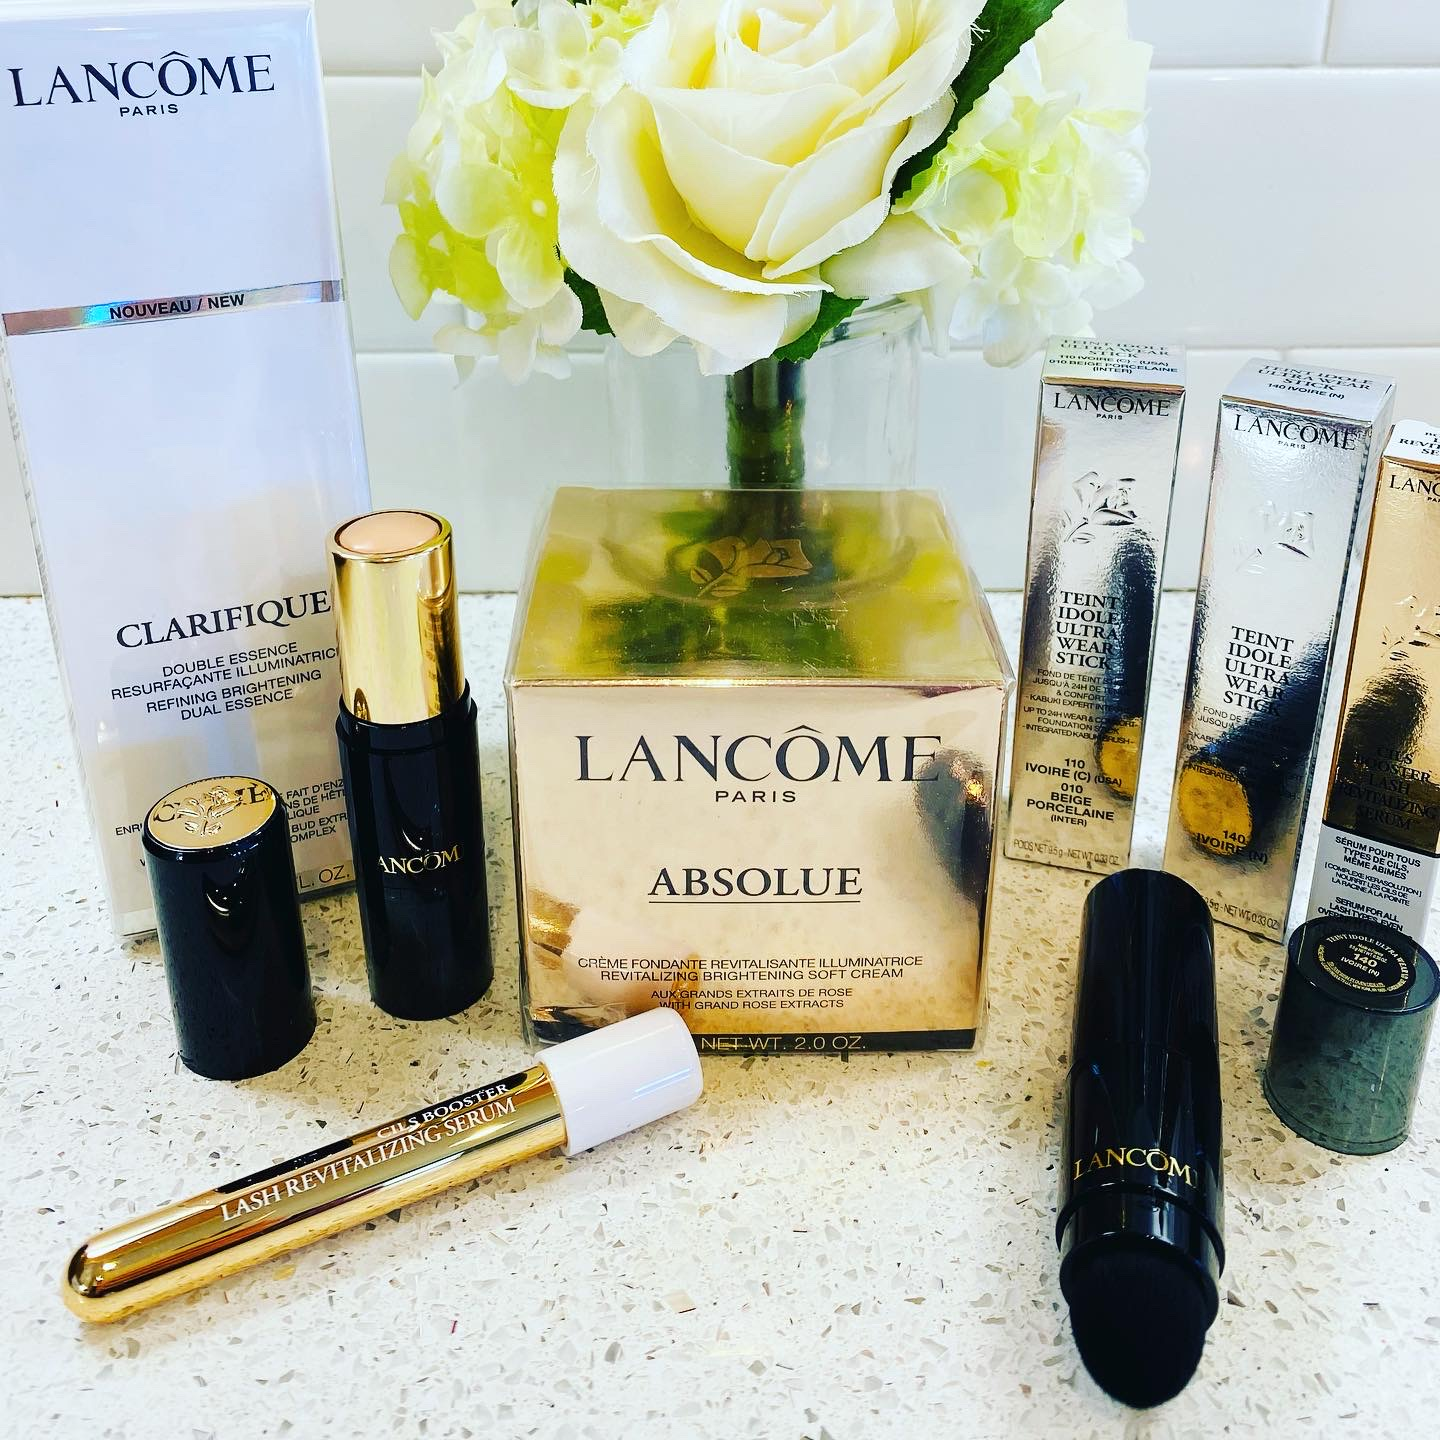 4 Products from Lancôme to Help you Look Your Best this Spring and Beyond!